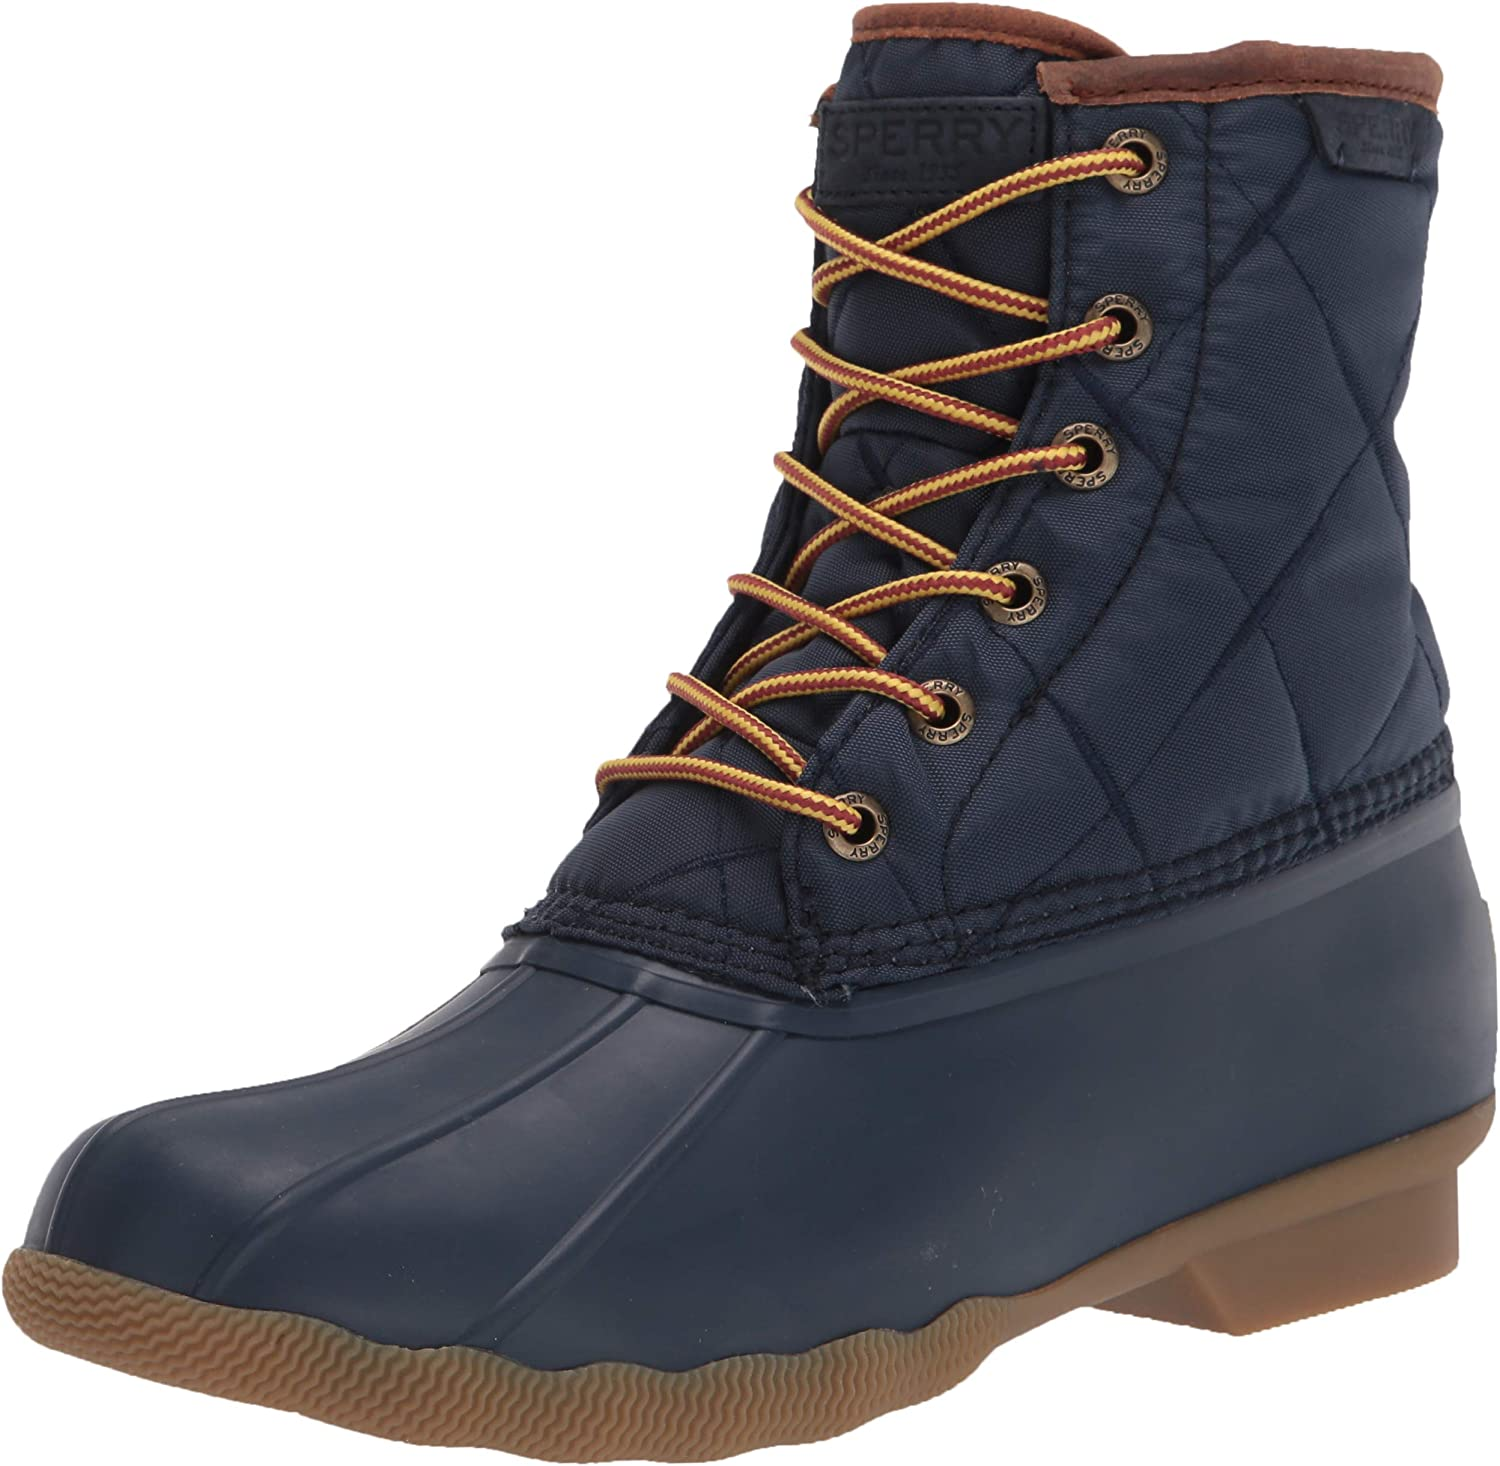 Sperry Max High quality 41% OFF Men's Saltwater Rain Duck Boot